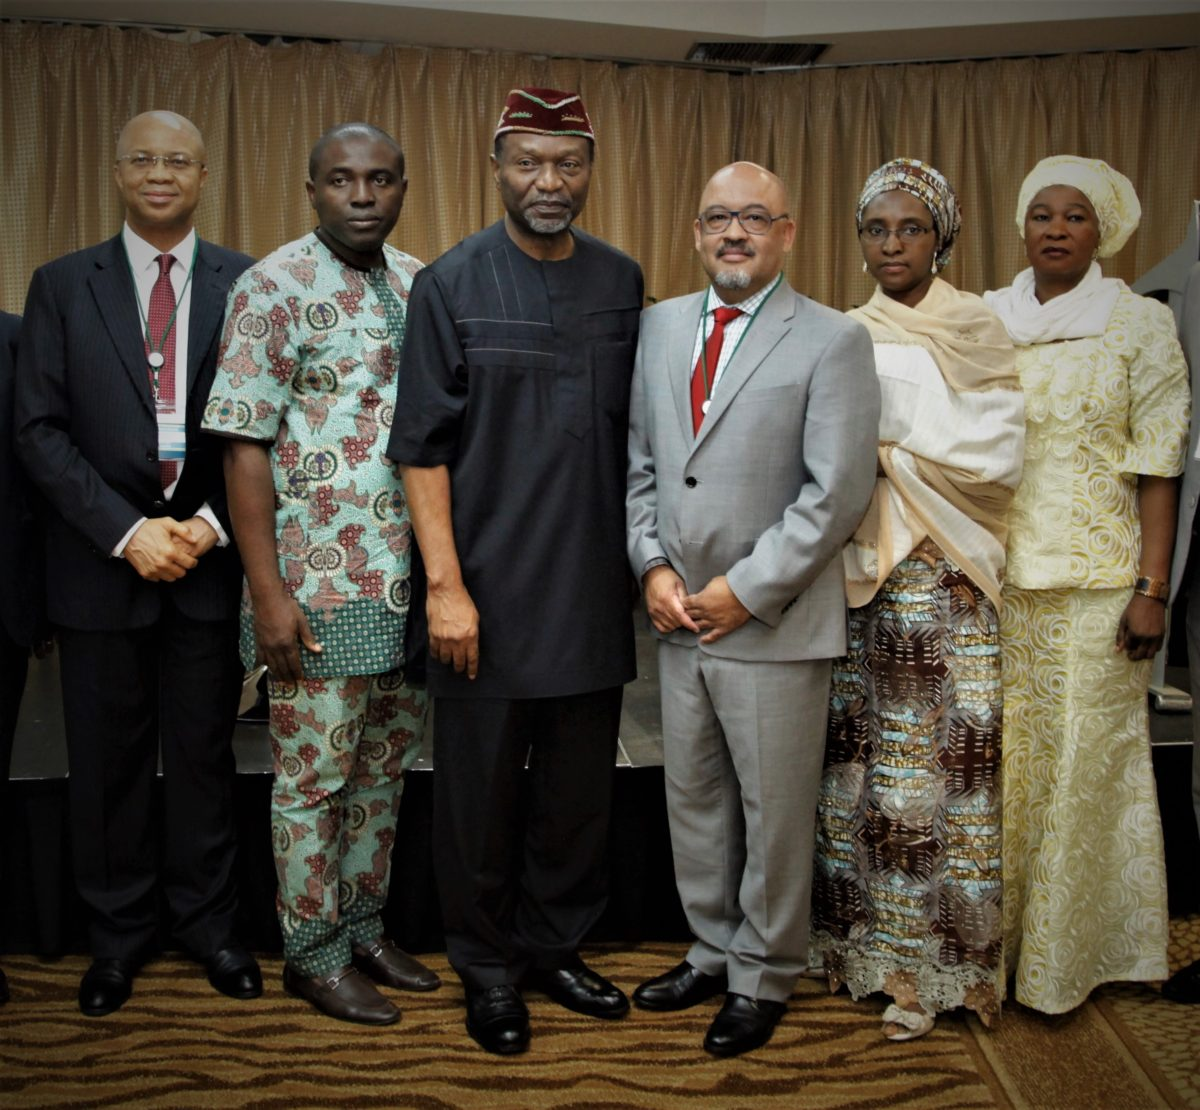 Senator Udoma Udo Udoma with CABRI's Executive Secretary, Neil Cole and members of the National Assembly and the Ministry of Budget and National Planning of the Federal Republic of Nigeria.